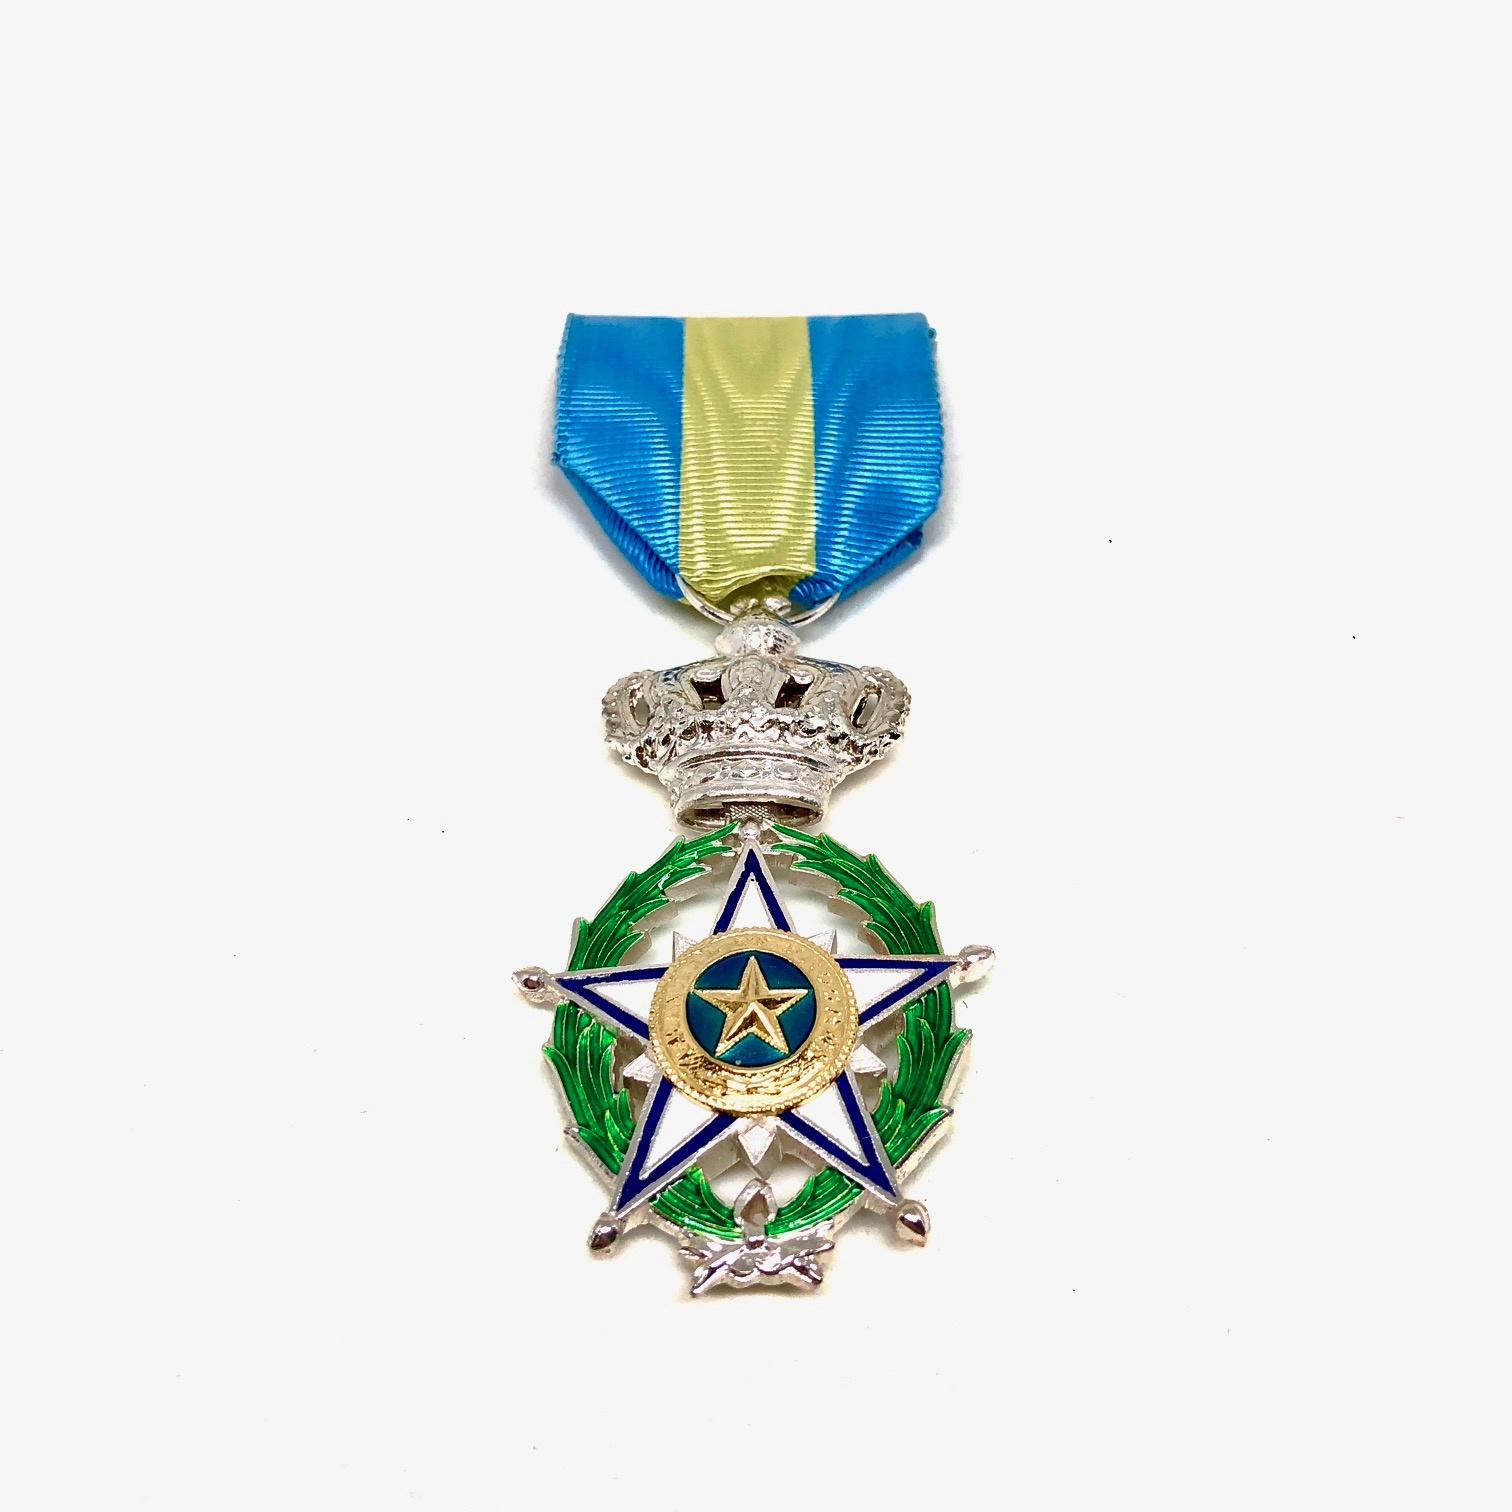 Knight in the Order of the African Star